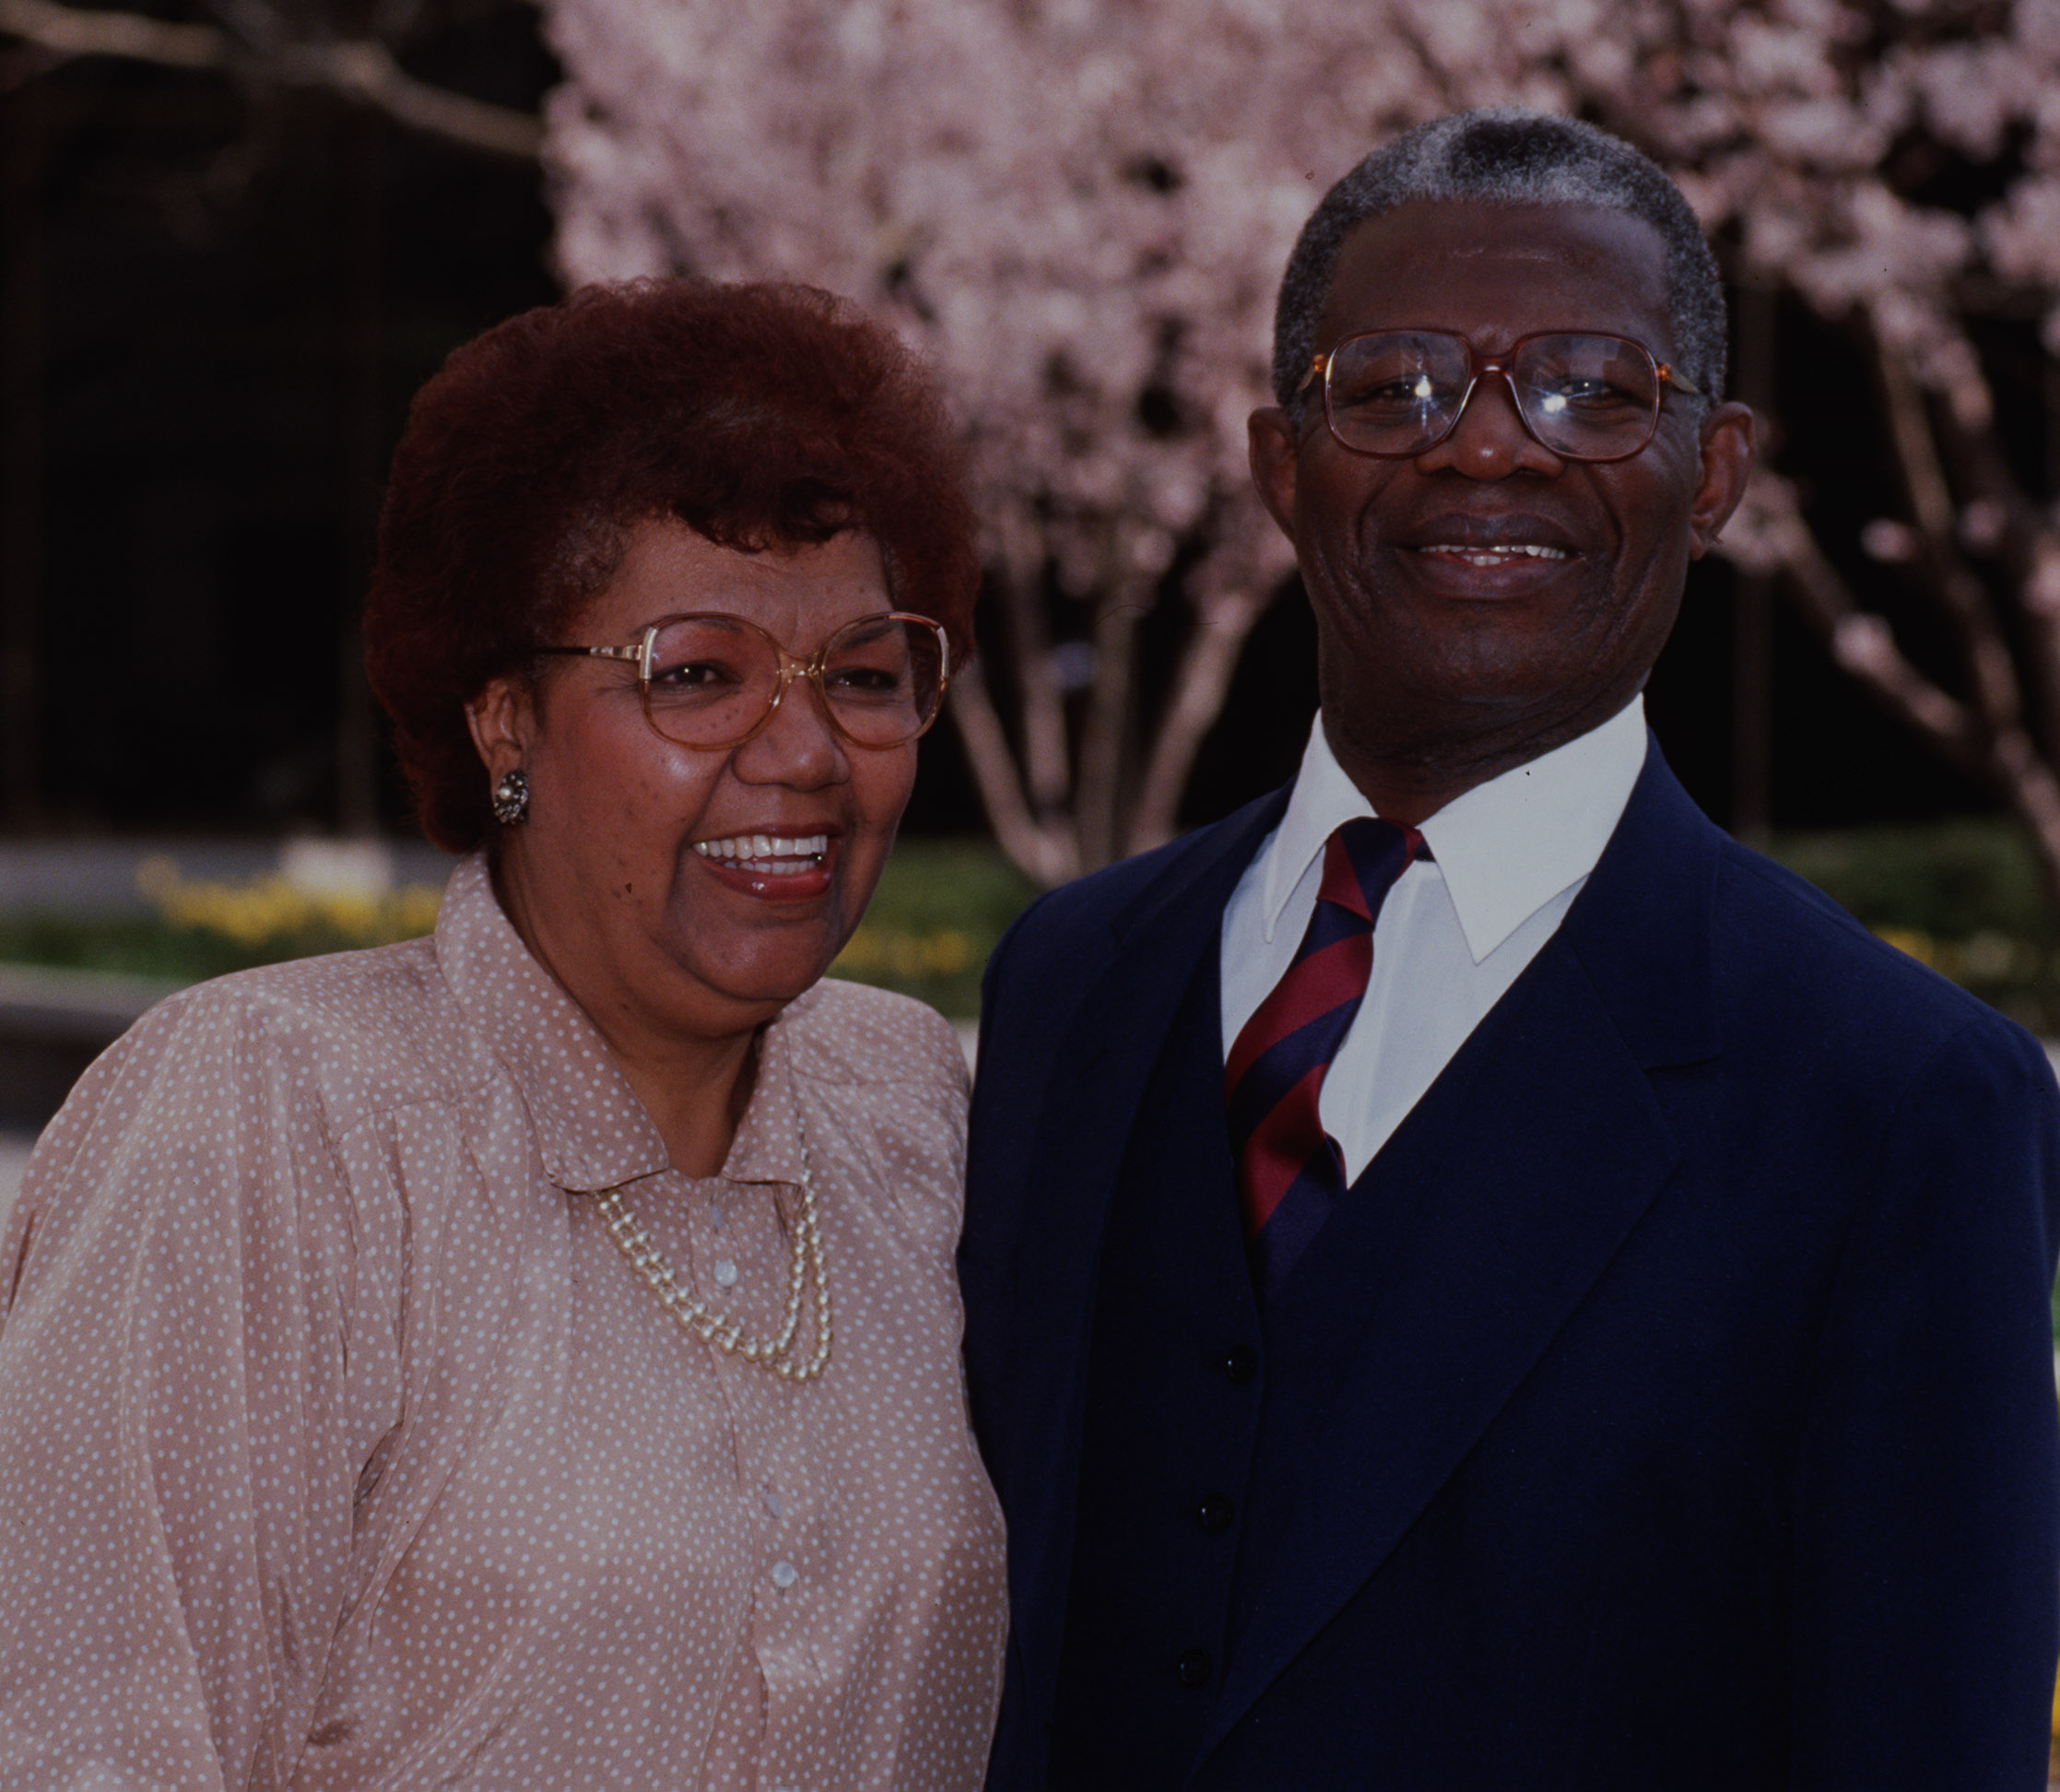 Elder Helvécio Martins and his wife, Rudá Martins, in 1990 when he was called to Second Quorum of the Seventy.